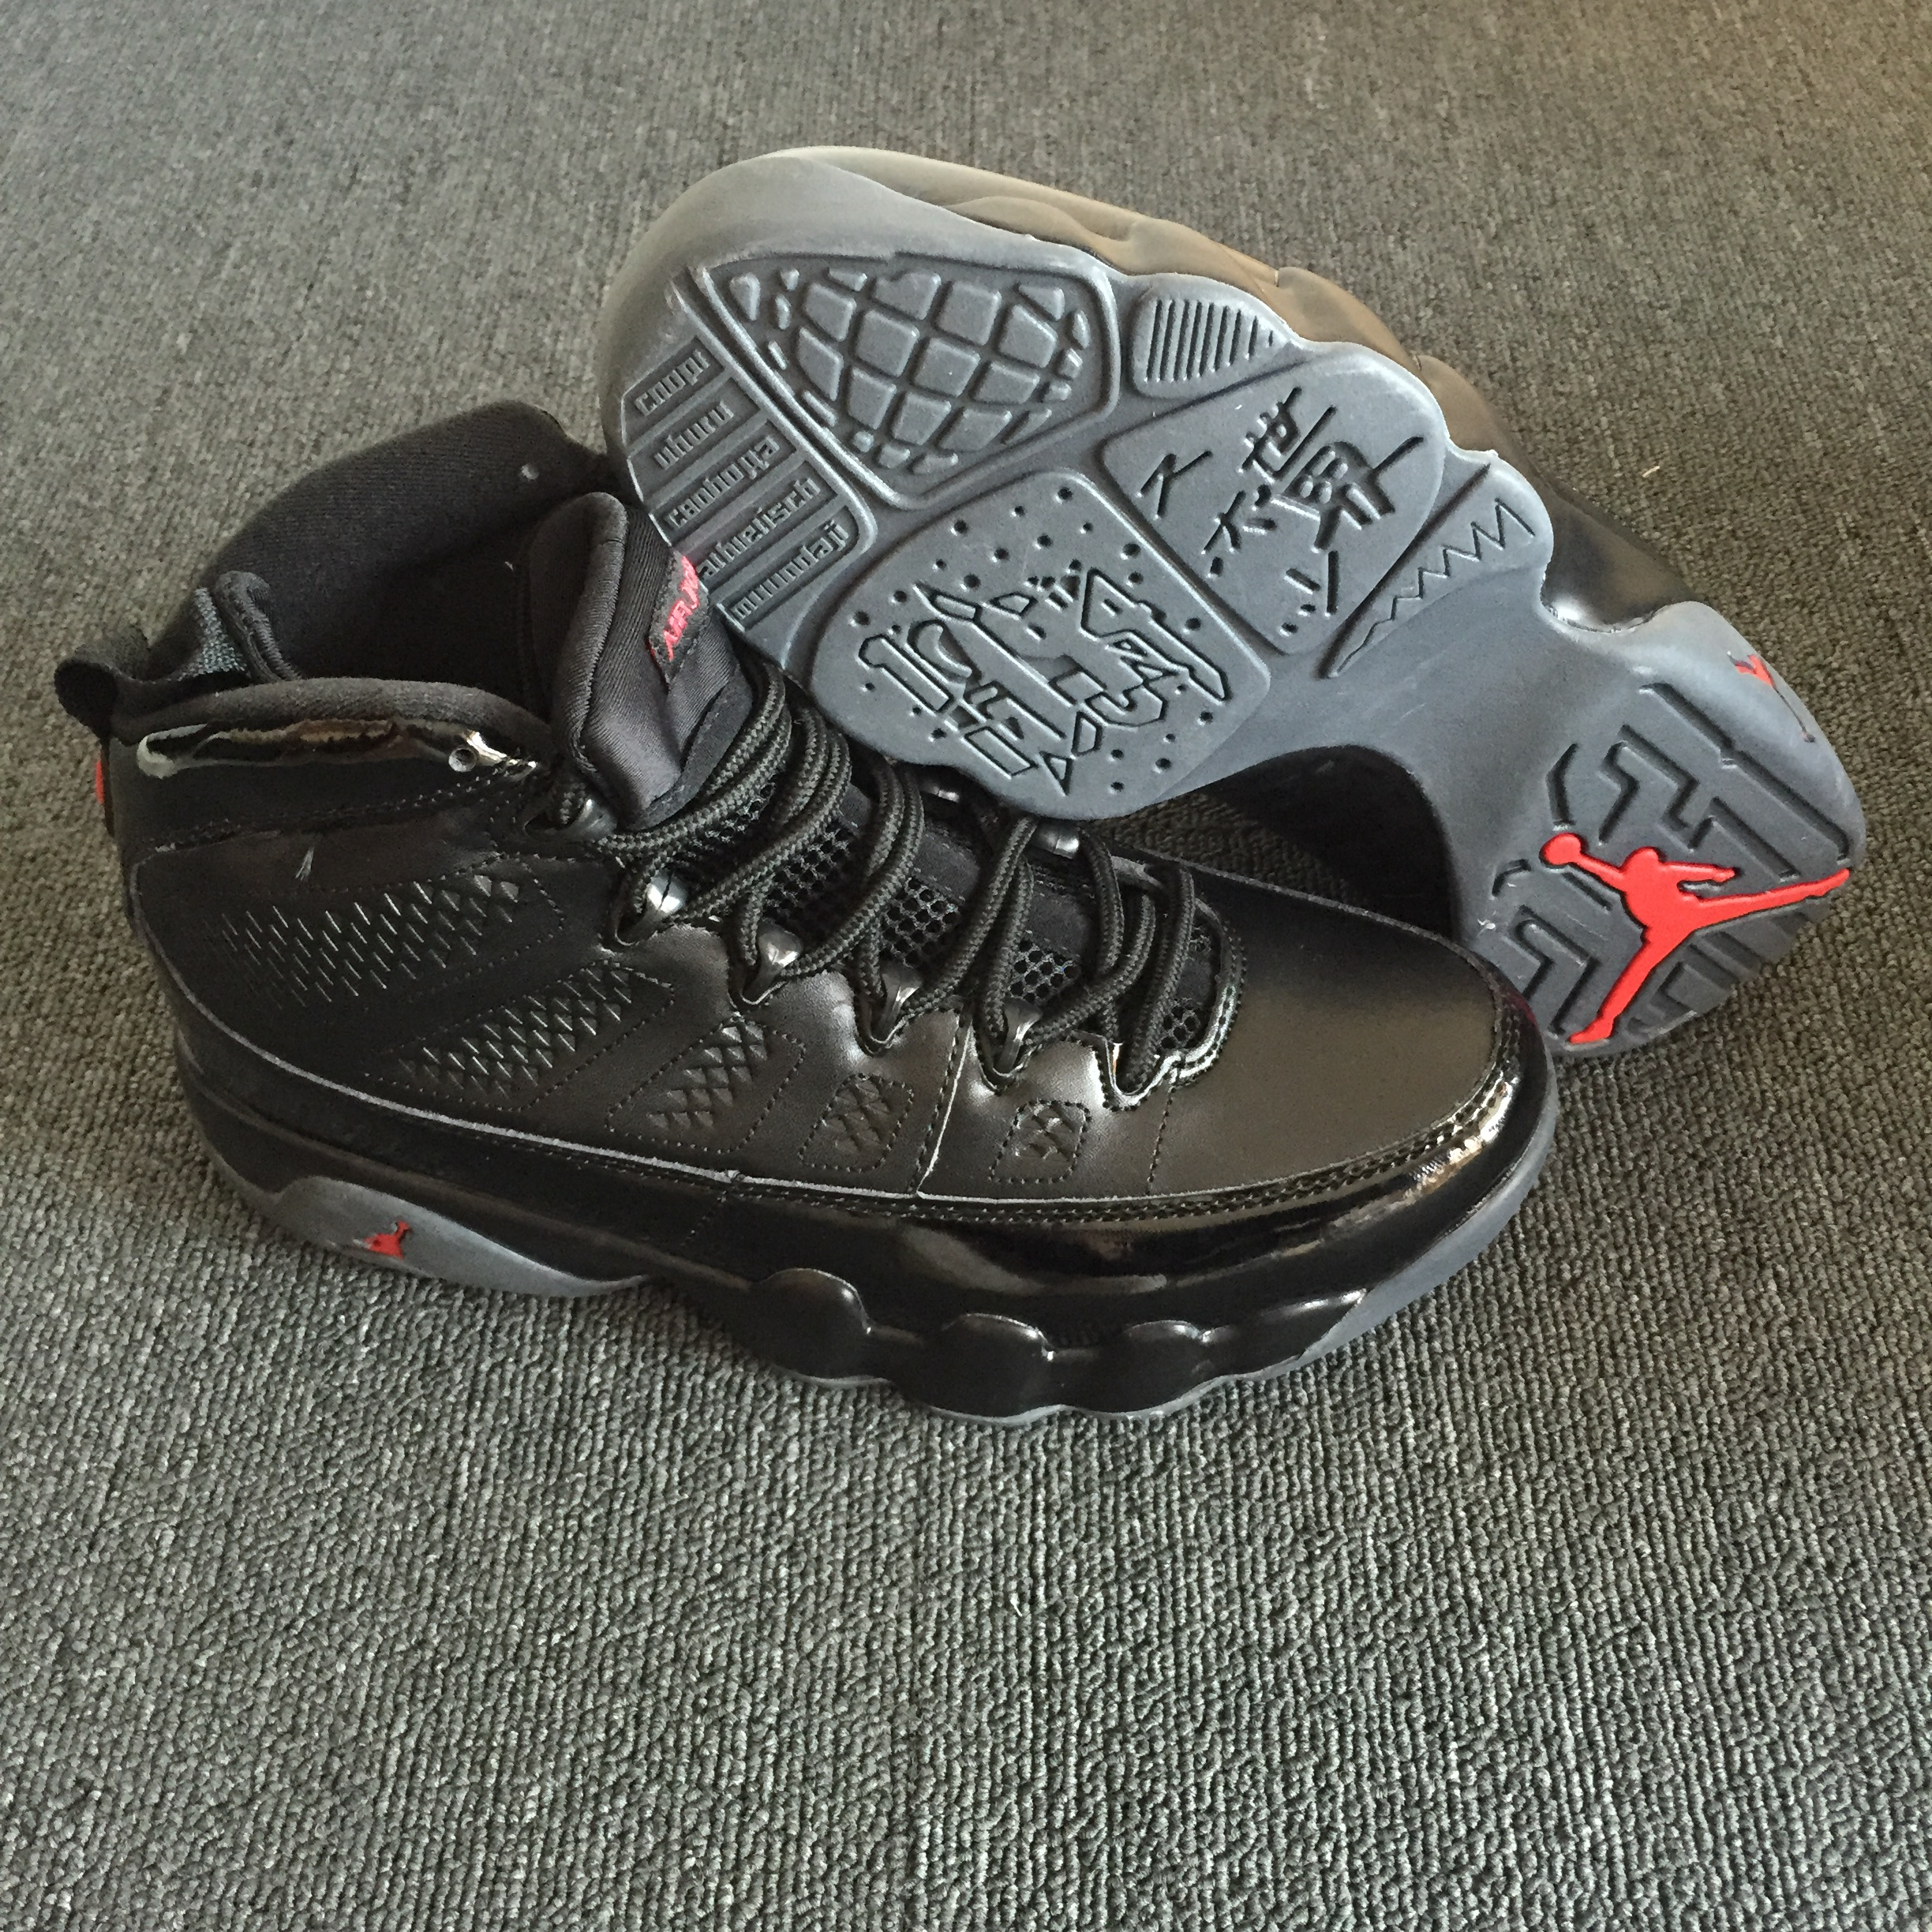 New Air Jordan 9 Retro Black Red Grey Shoes